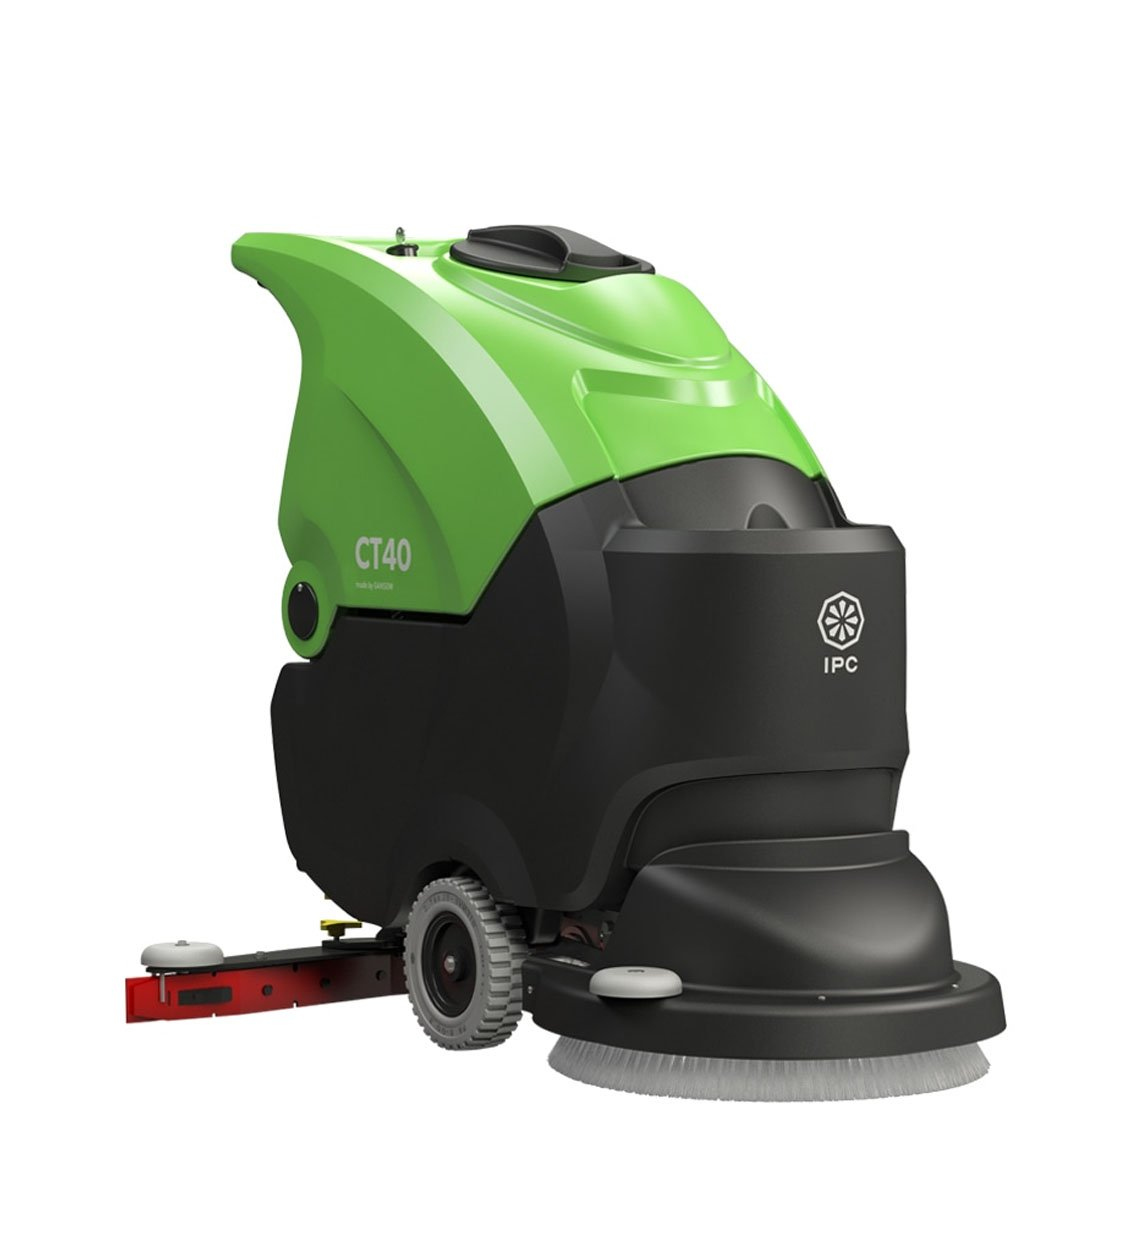 Ipc Eagle Ct40 Automatic Push Behind Floor Scrubber